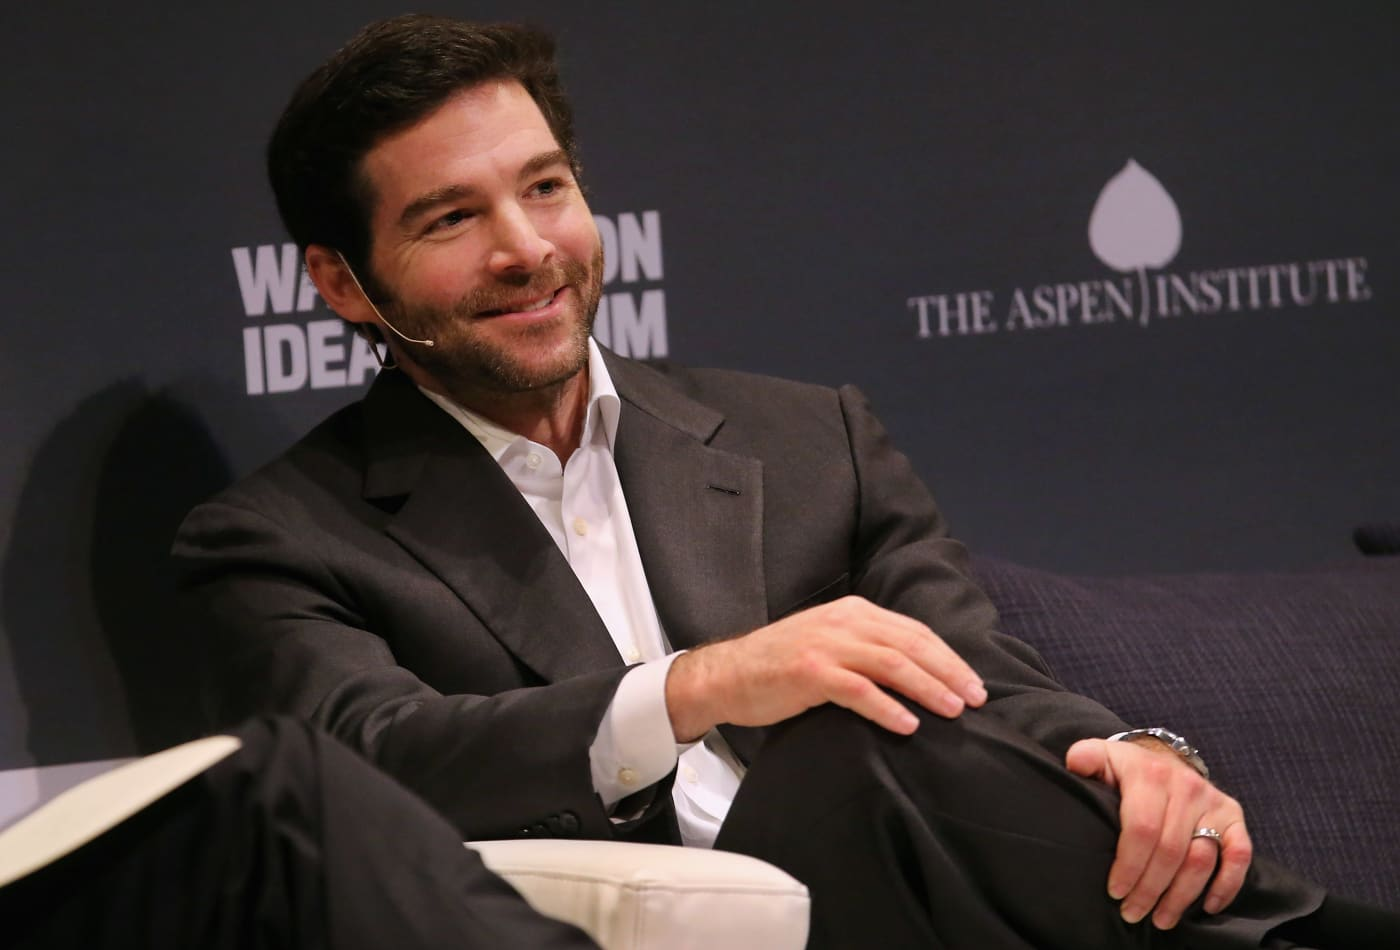 Microsoft paid $26 billion for LinkedIn, then mostly left it alone—and CEO Jeff Weiner is good with that